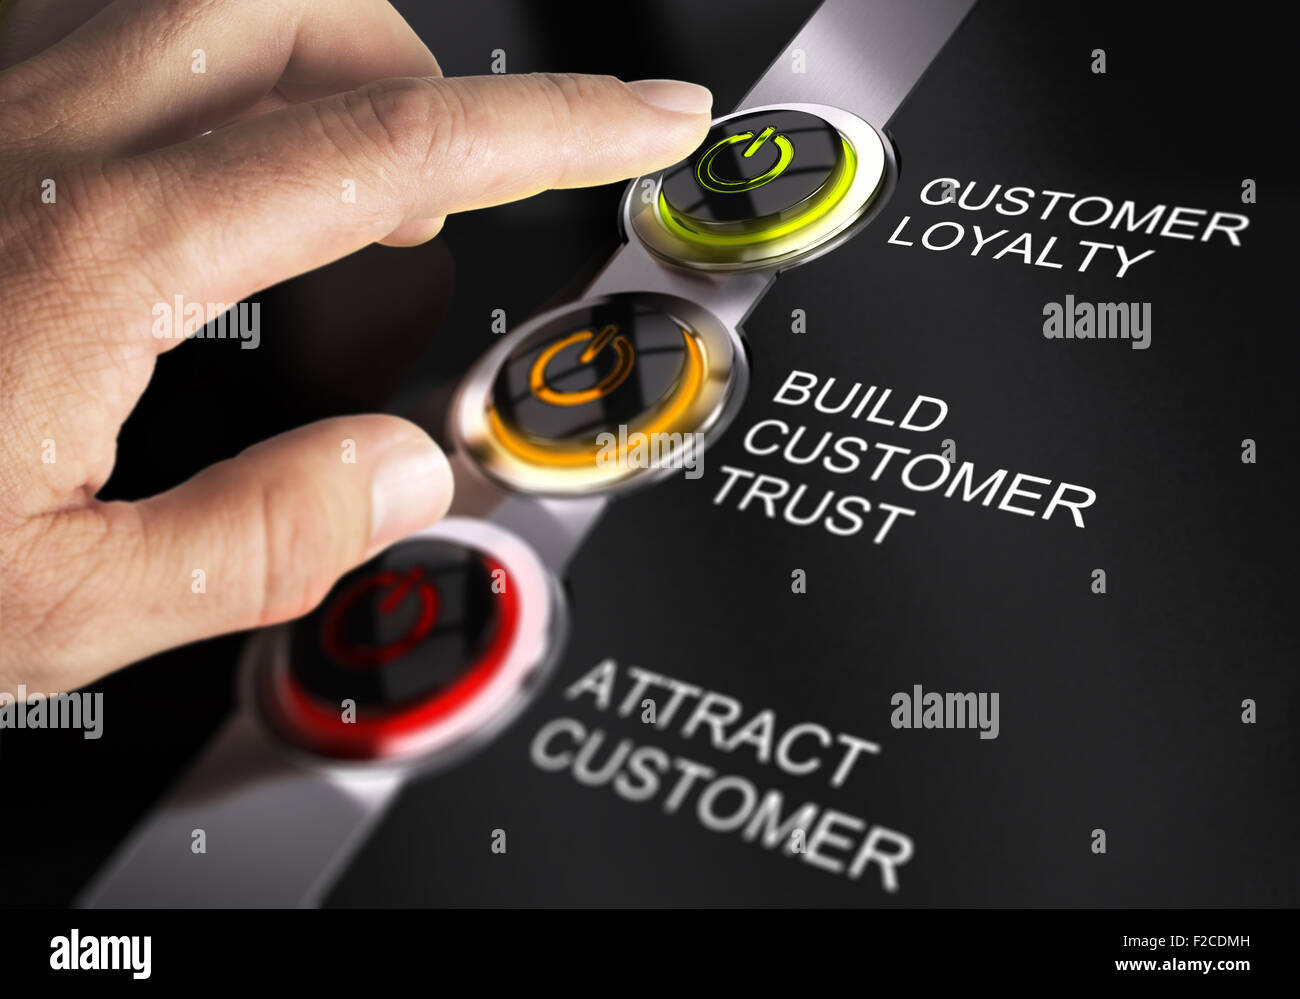 Finger about to press customer loyalty button. Concept for illustration of sales process. - Stock Image